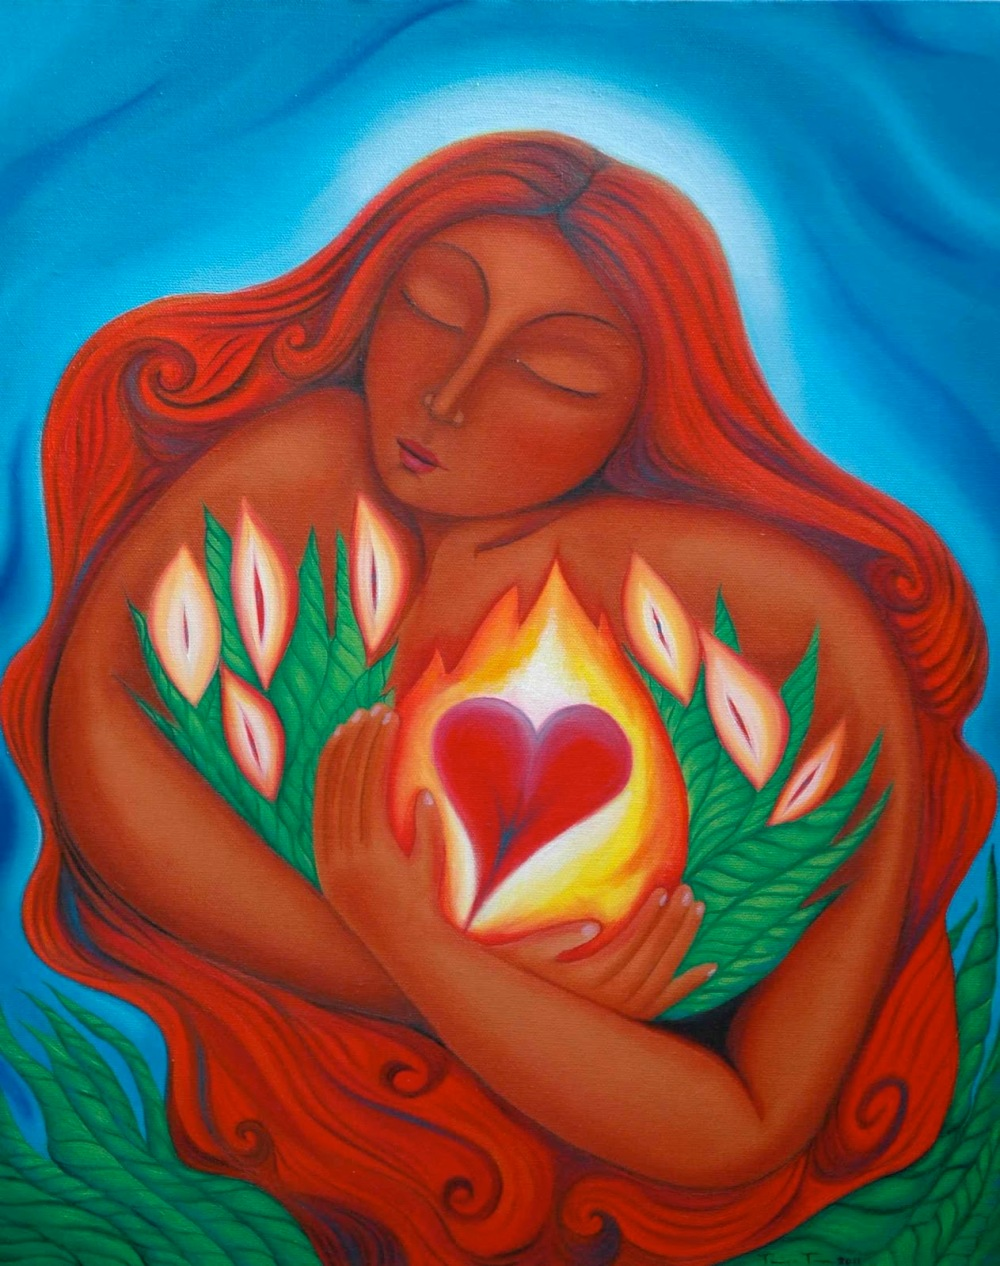 maria-magdalena-del-corazon-ardiente-mary-magdalene-of-the-burning-heart-tanya-torres-2012-web